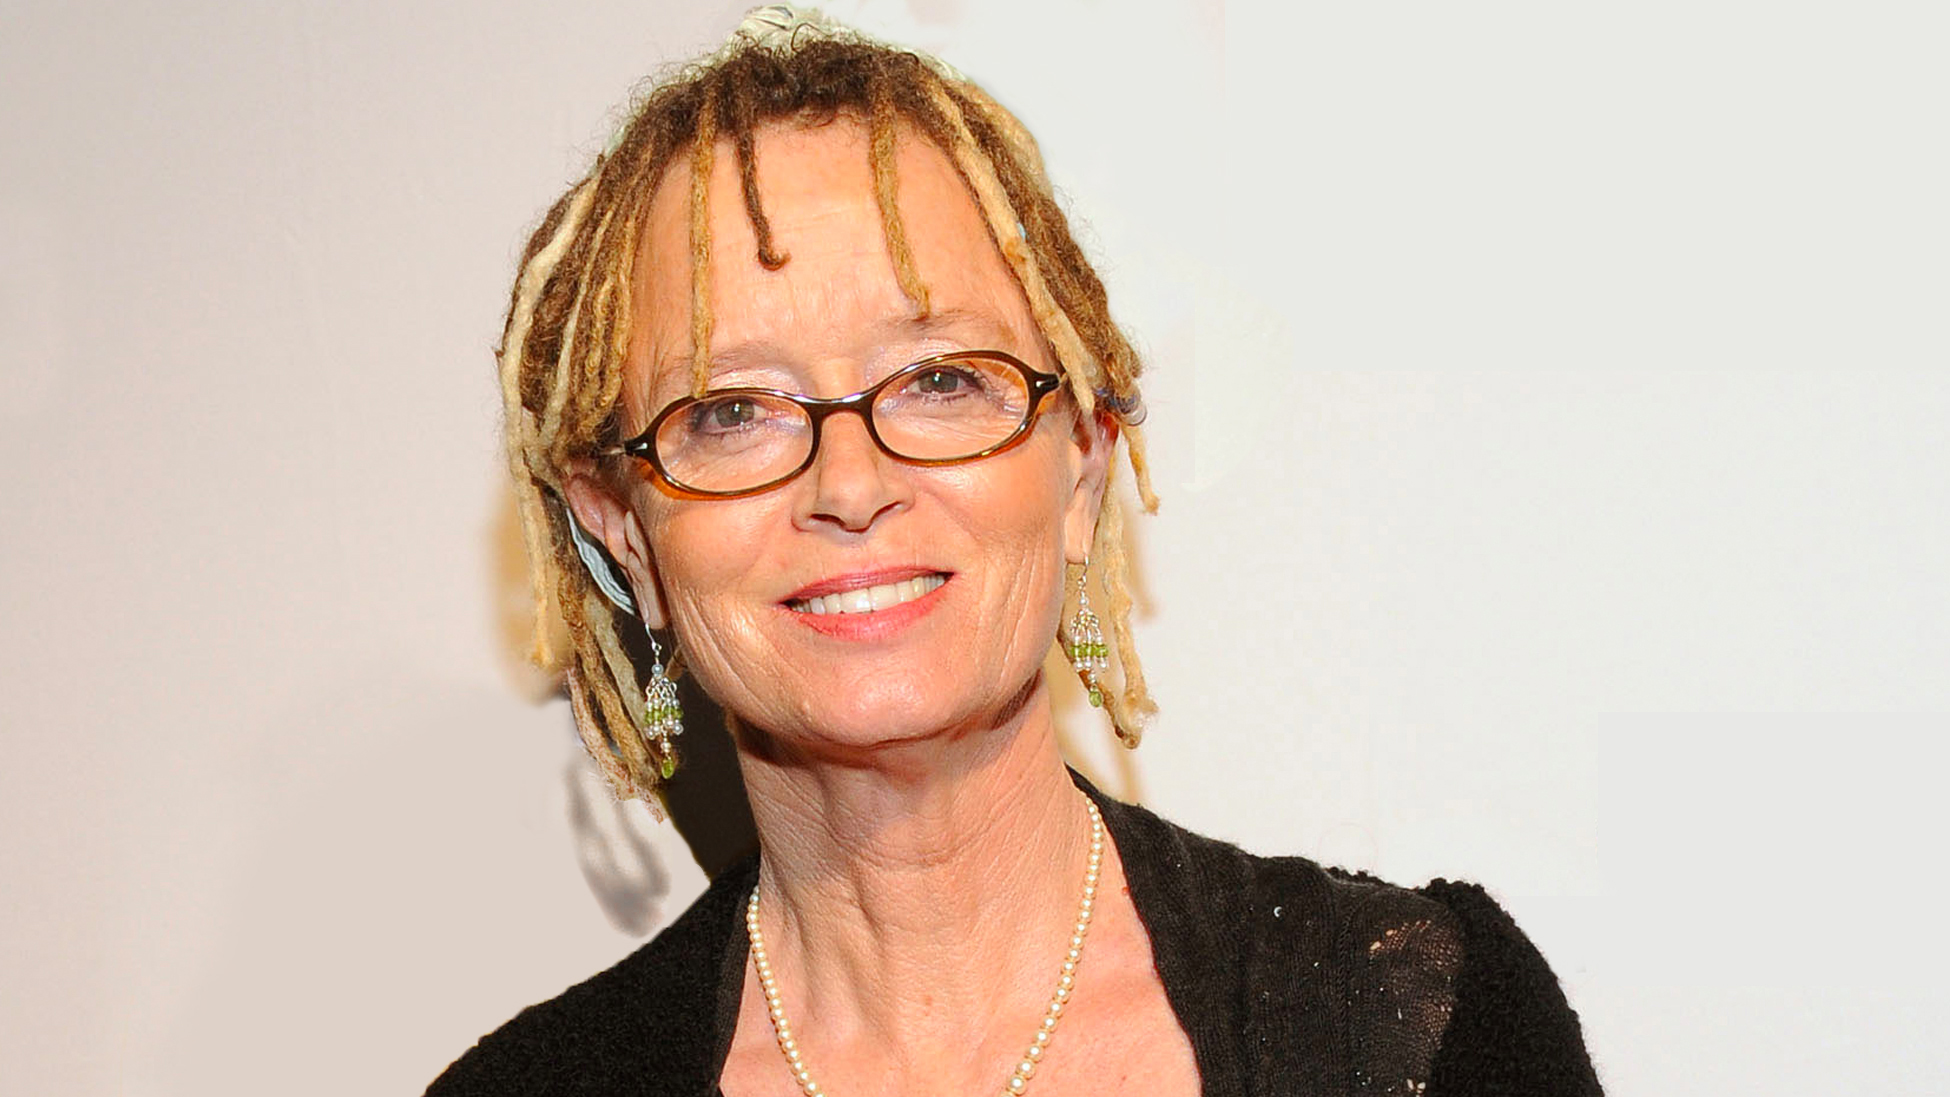 12 TRUTHS FROM LIFE AND WRITING: ANNE LAMOTT